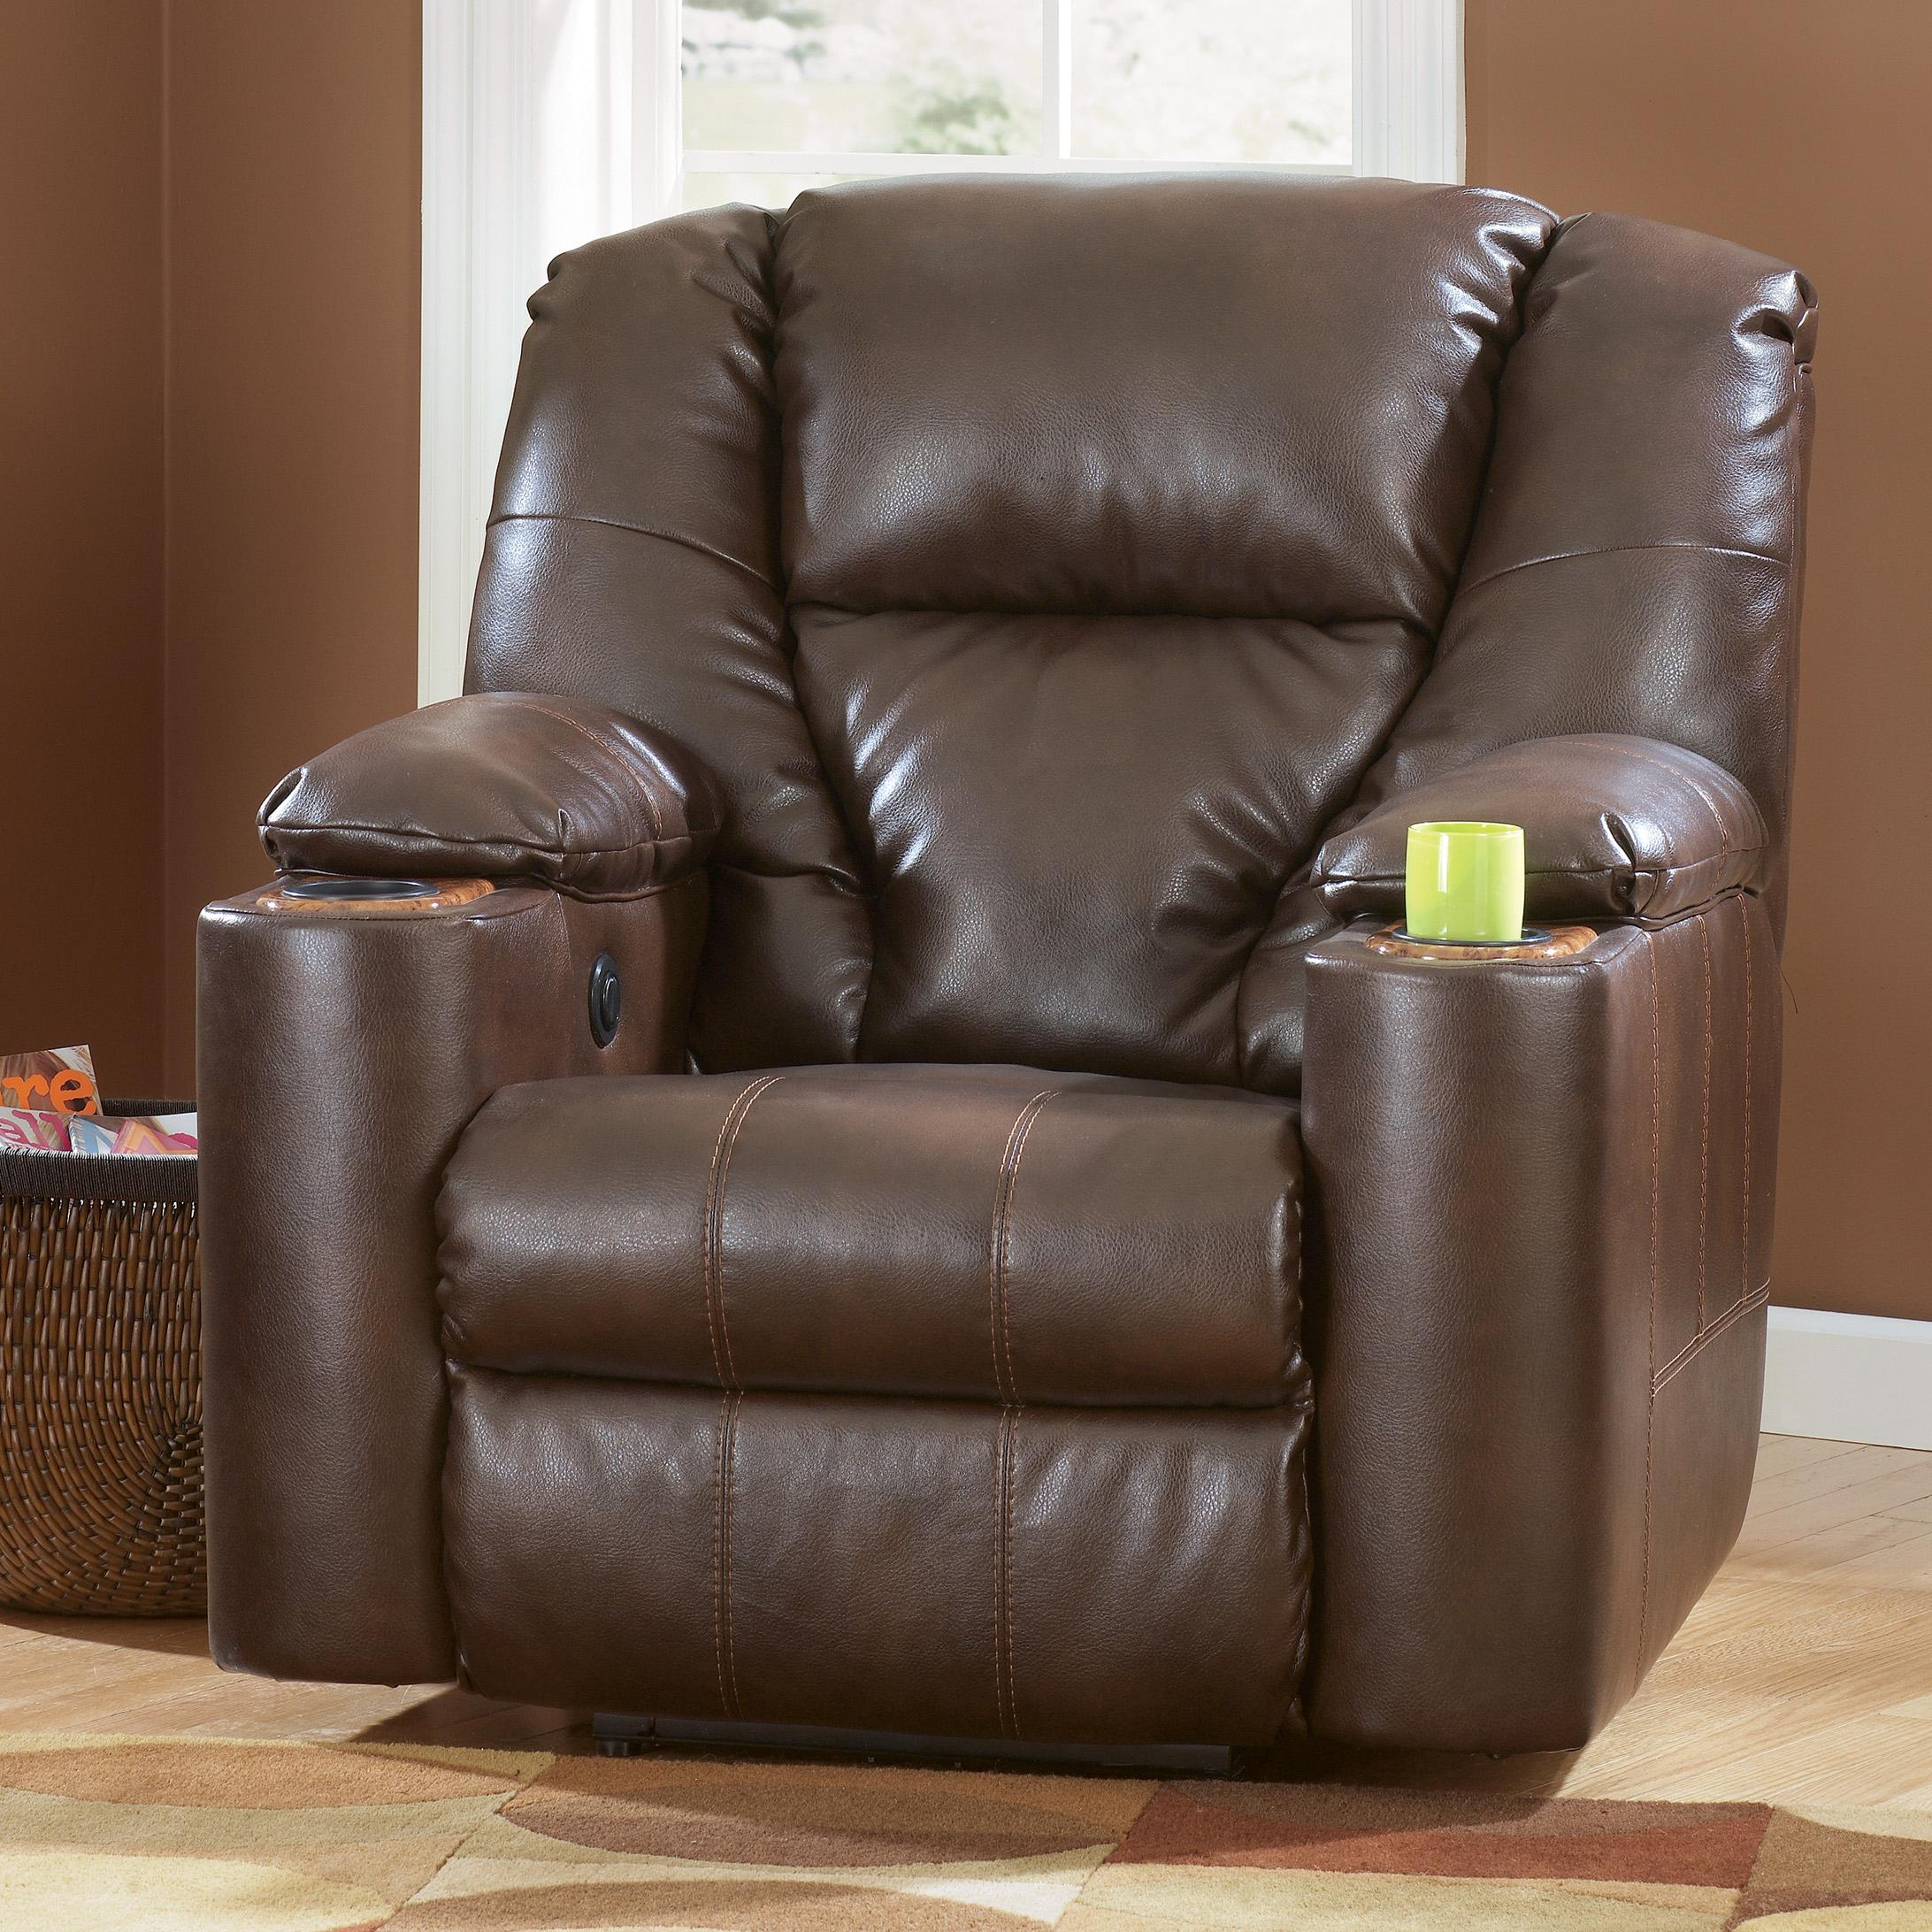 Signature Design by Ashley Paramount DuraBlend® - Brindle Zero Wall Recliner - Item Number: 7640129